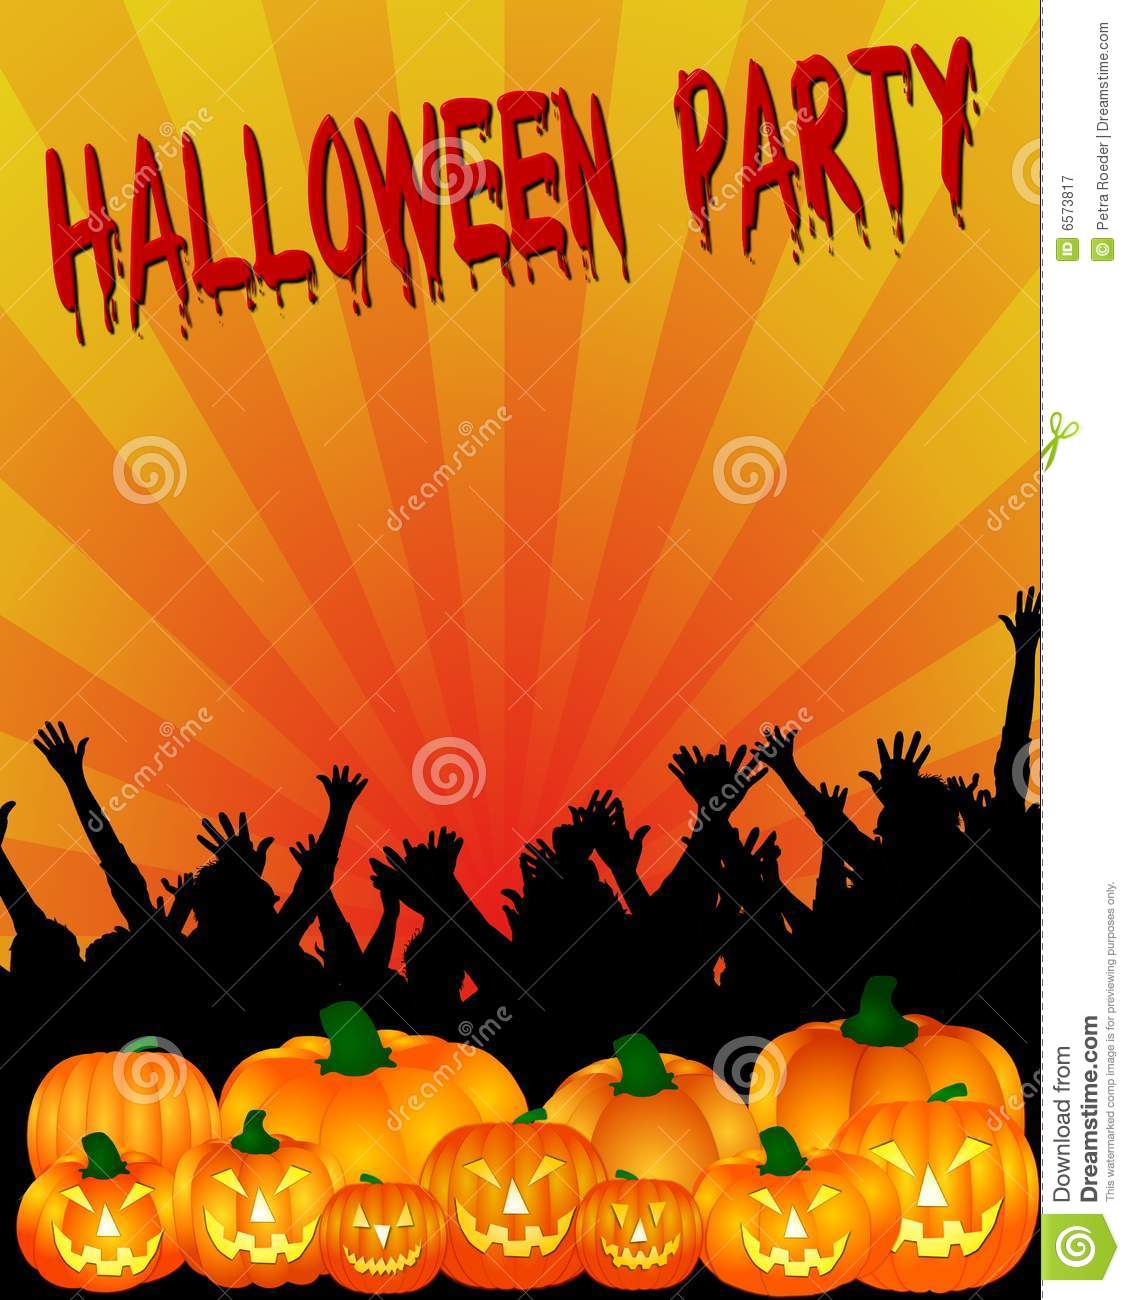 Halloween Party Invitation Royalty Free Stock Photography - Image ...